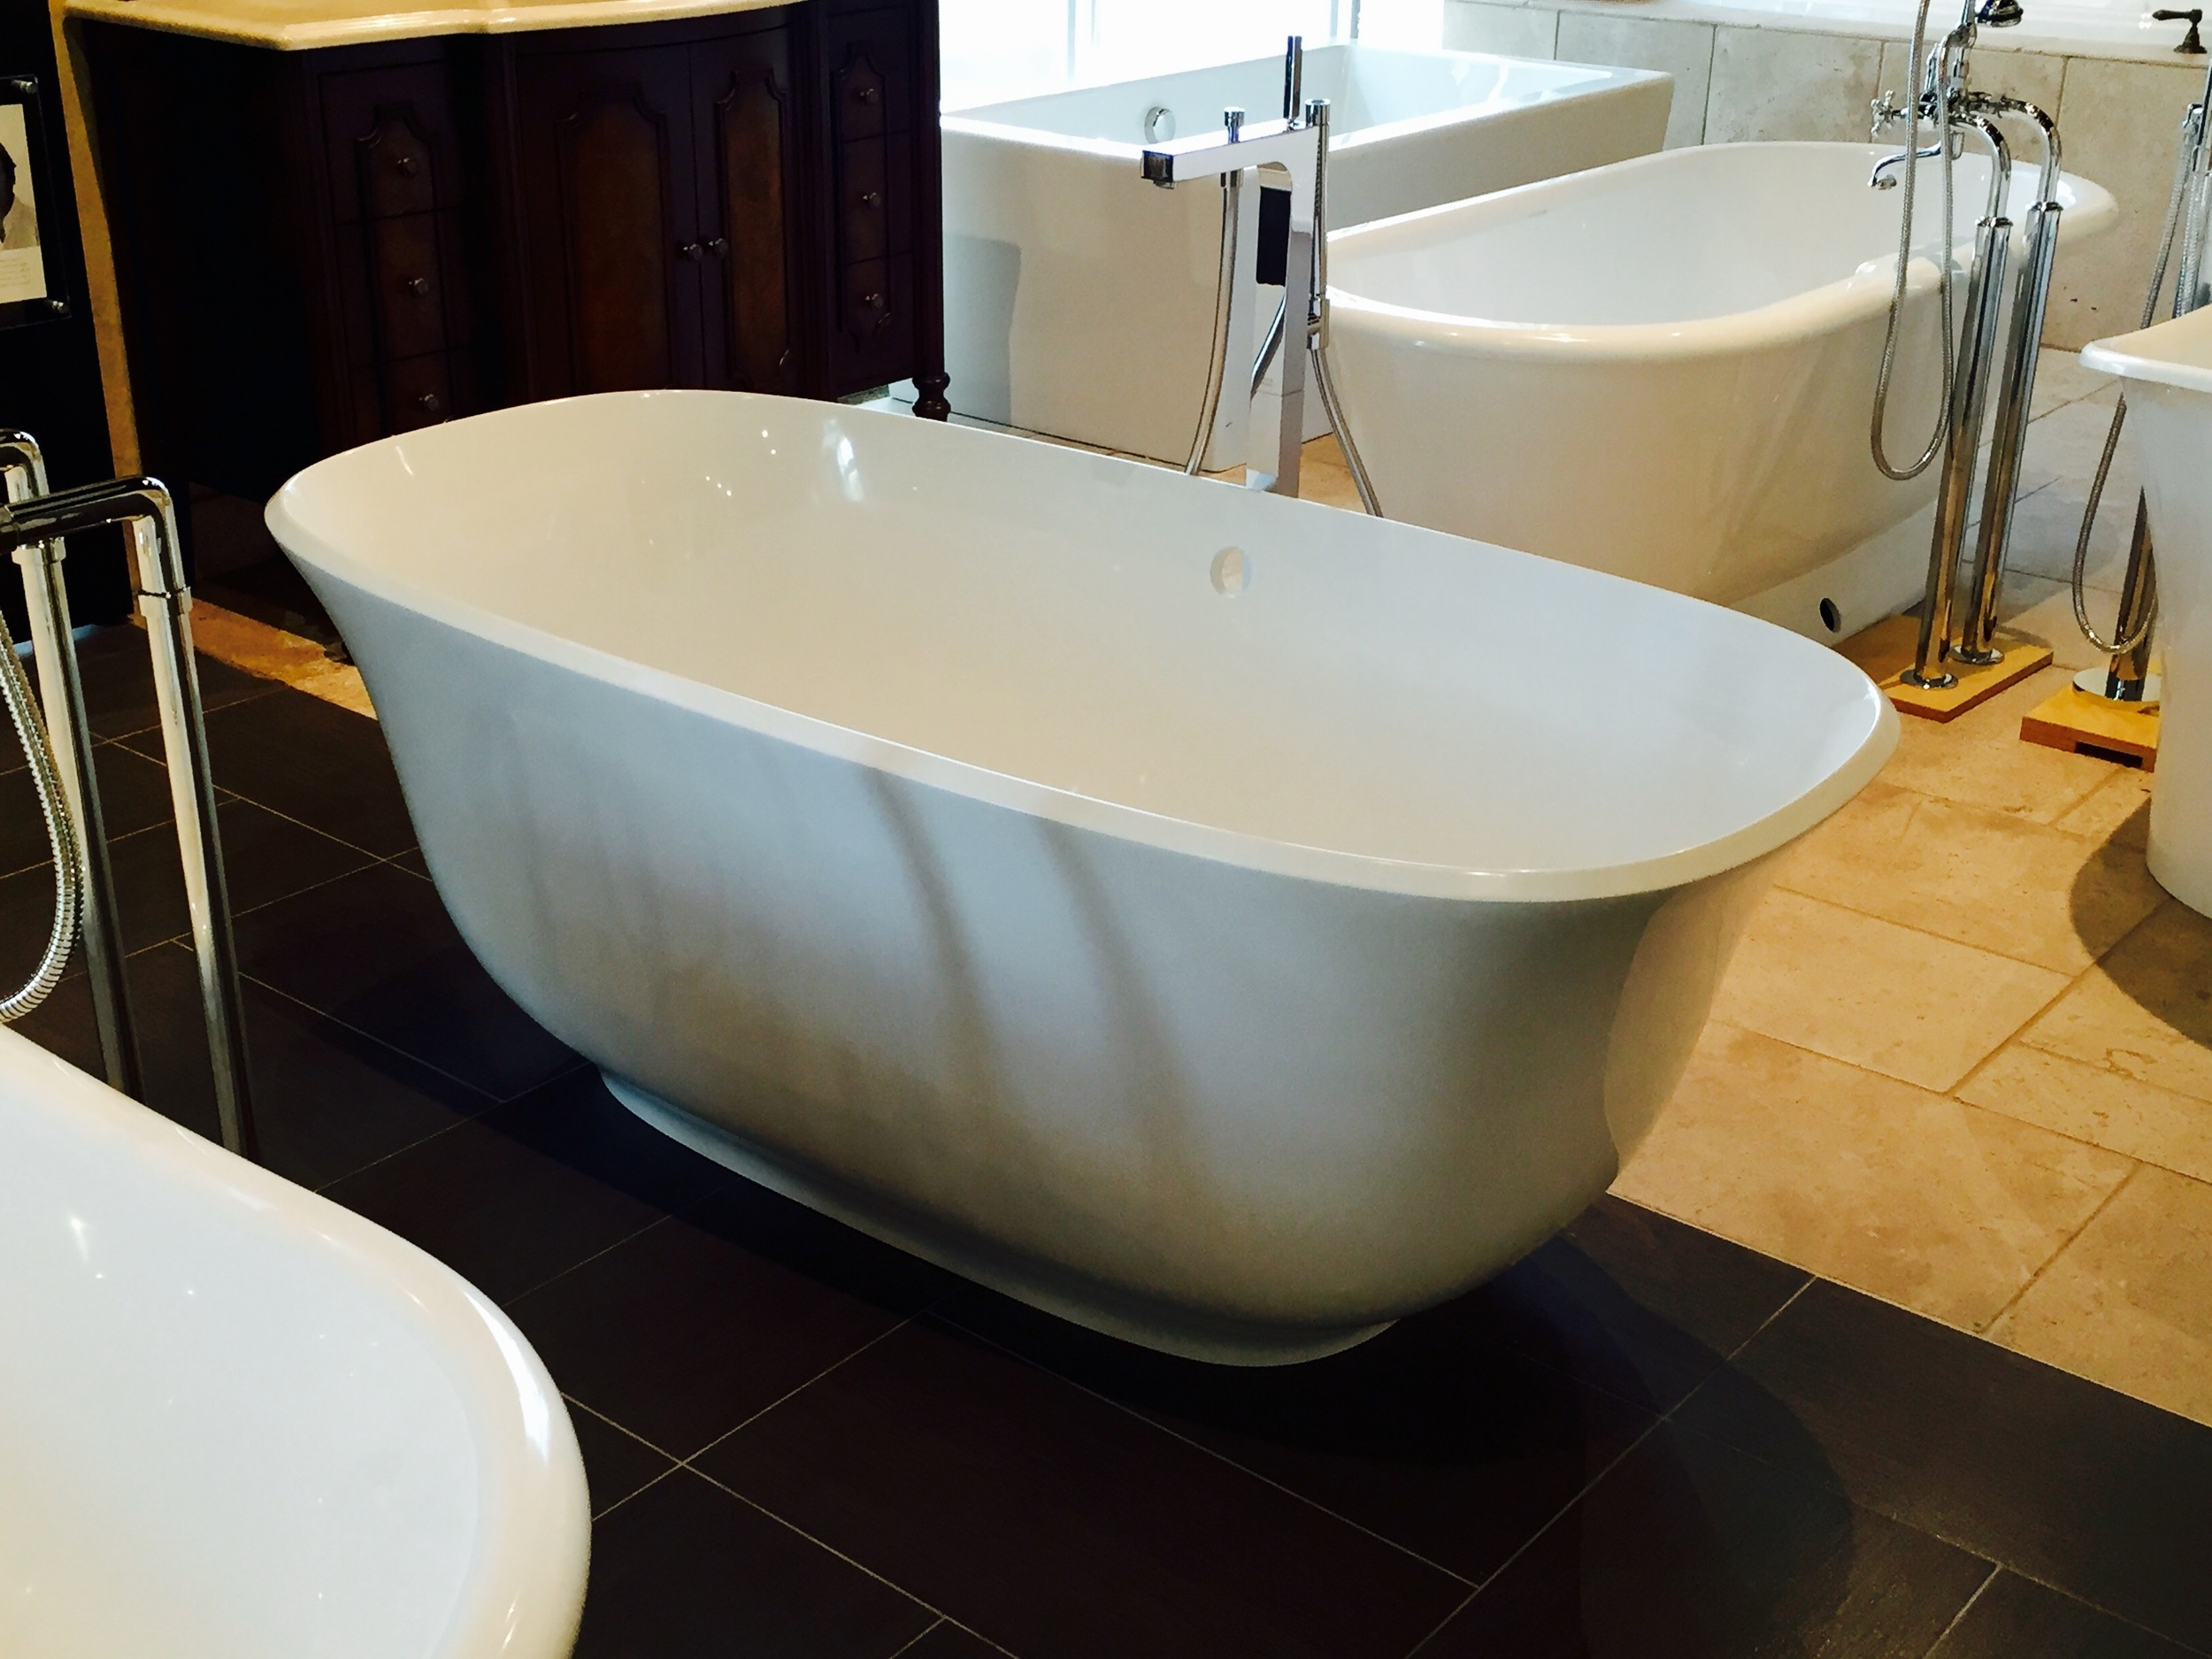 The  Amiata  tubhas a graceful curved shape but it is still too long.